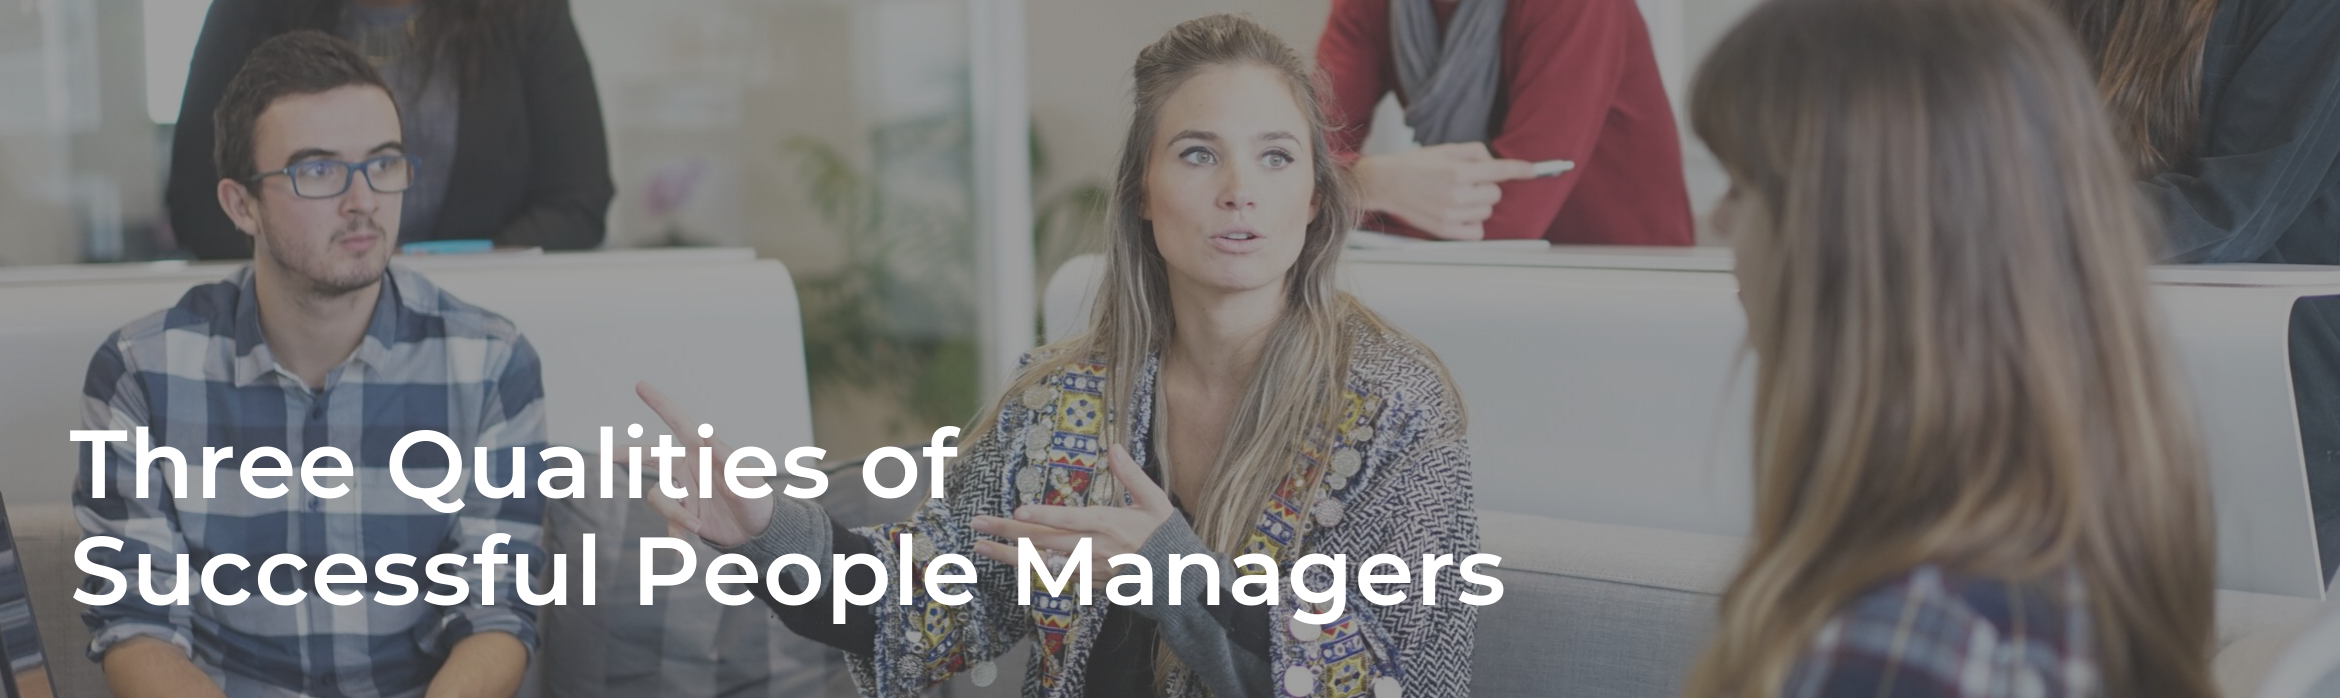 Three Qualities of Successful People Managers